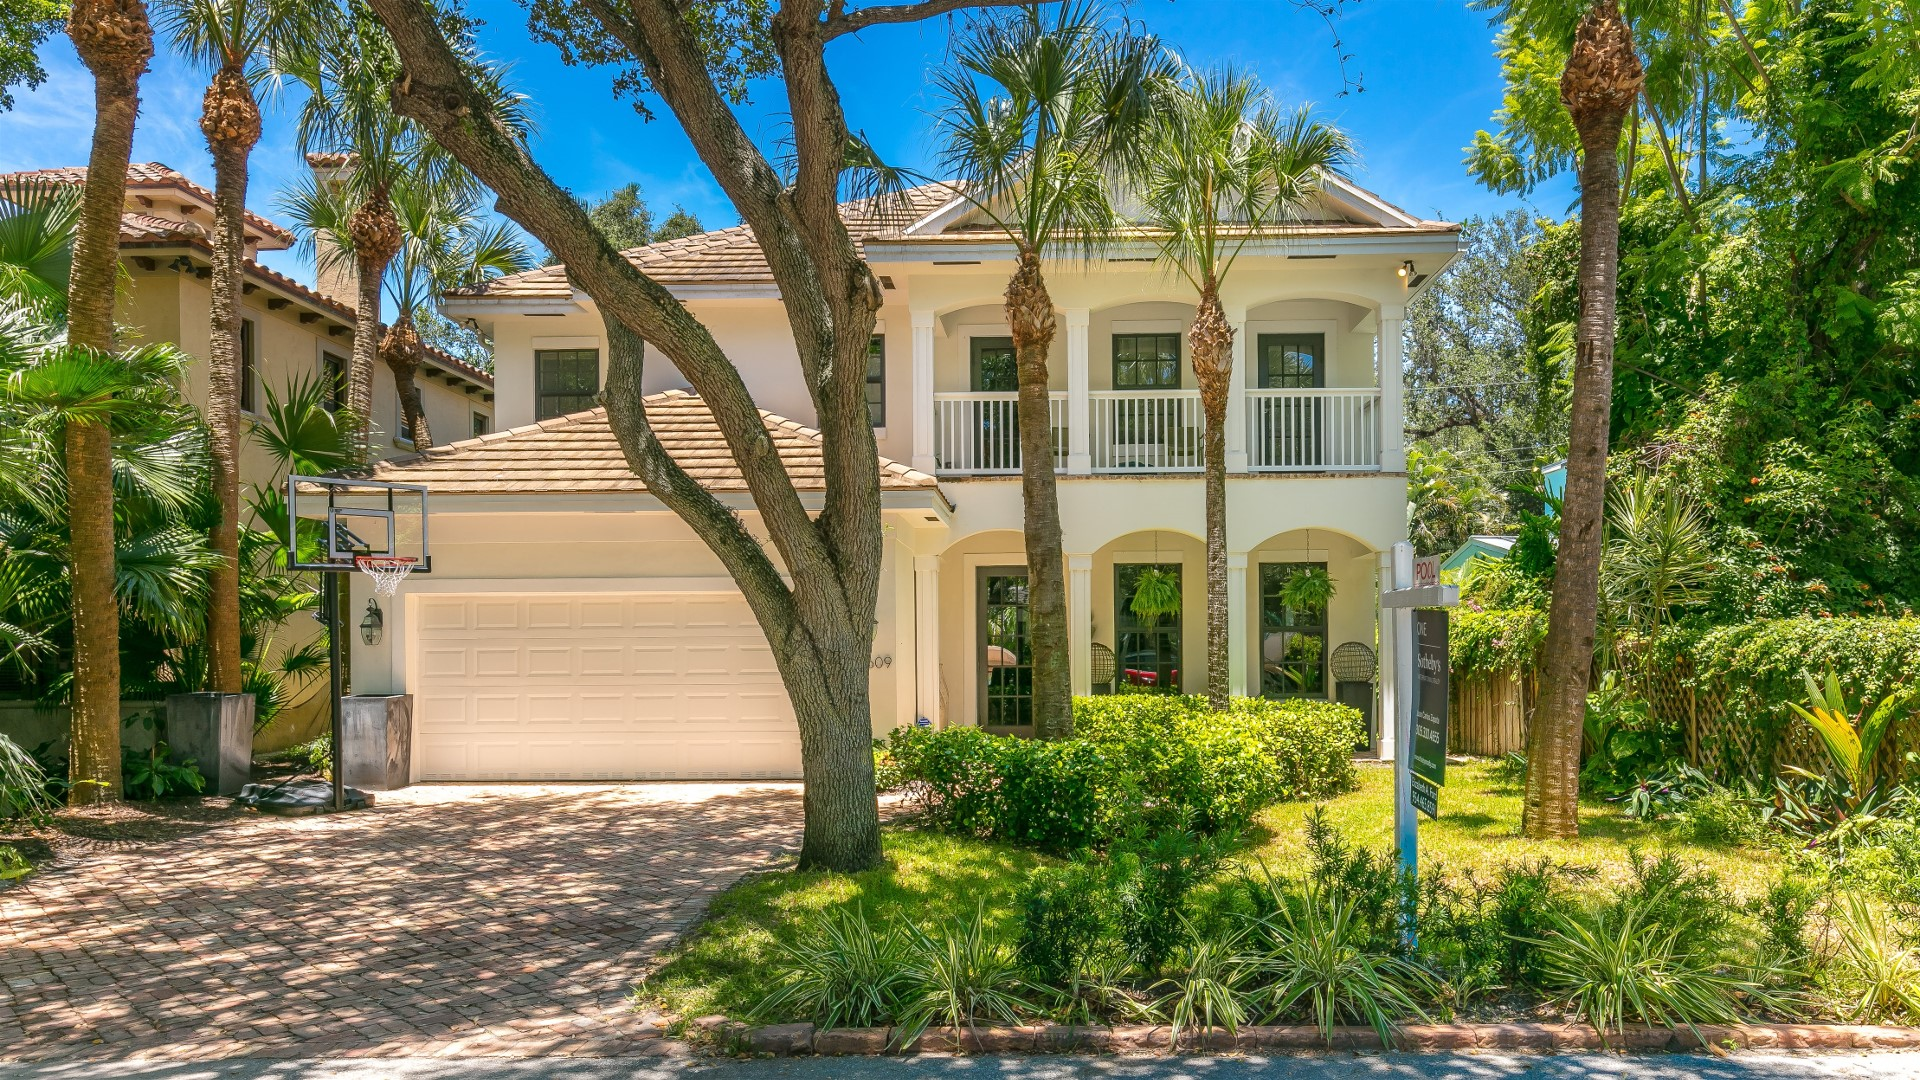 PRICE REDUCED! 1609 2nd Ct, Fort Lauderdale, FL 33301